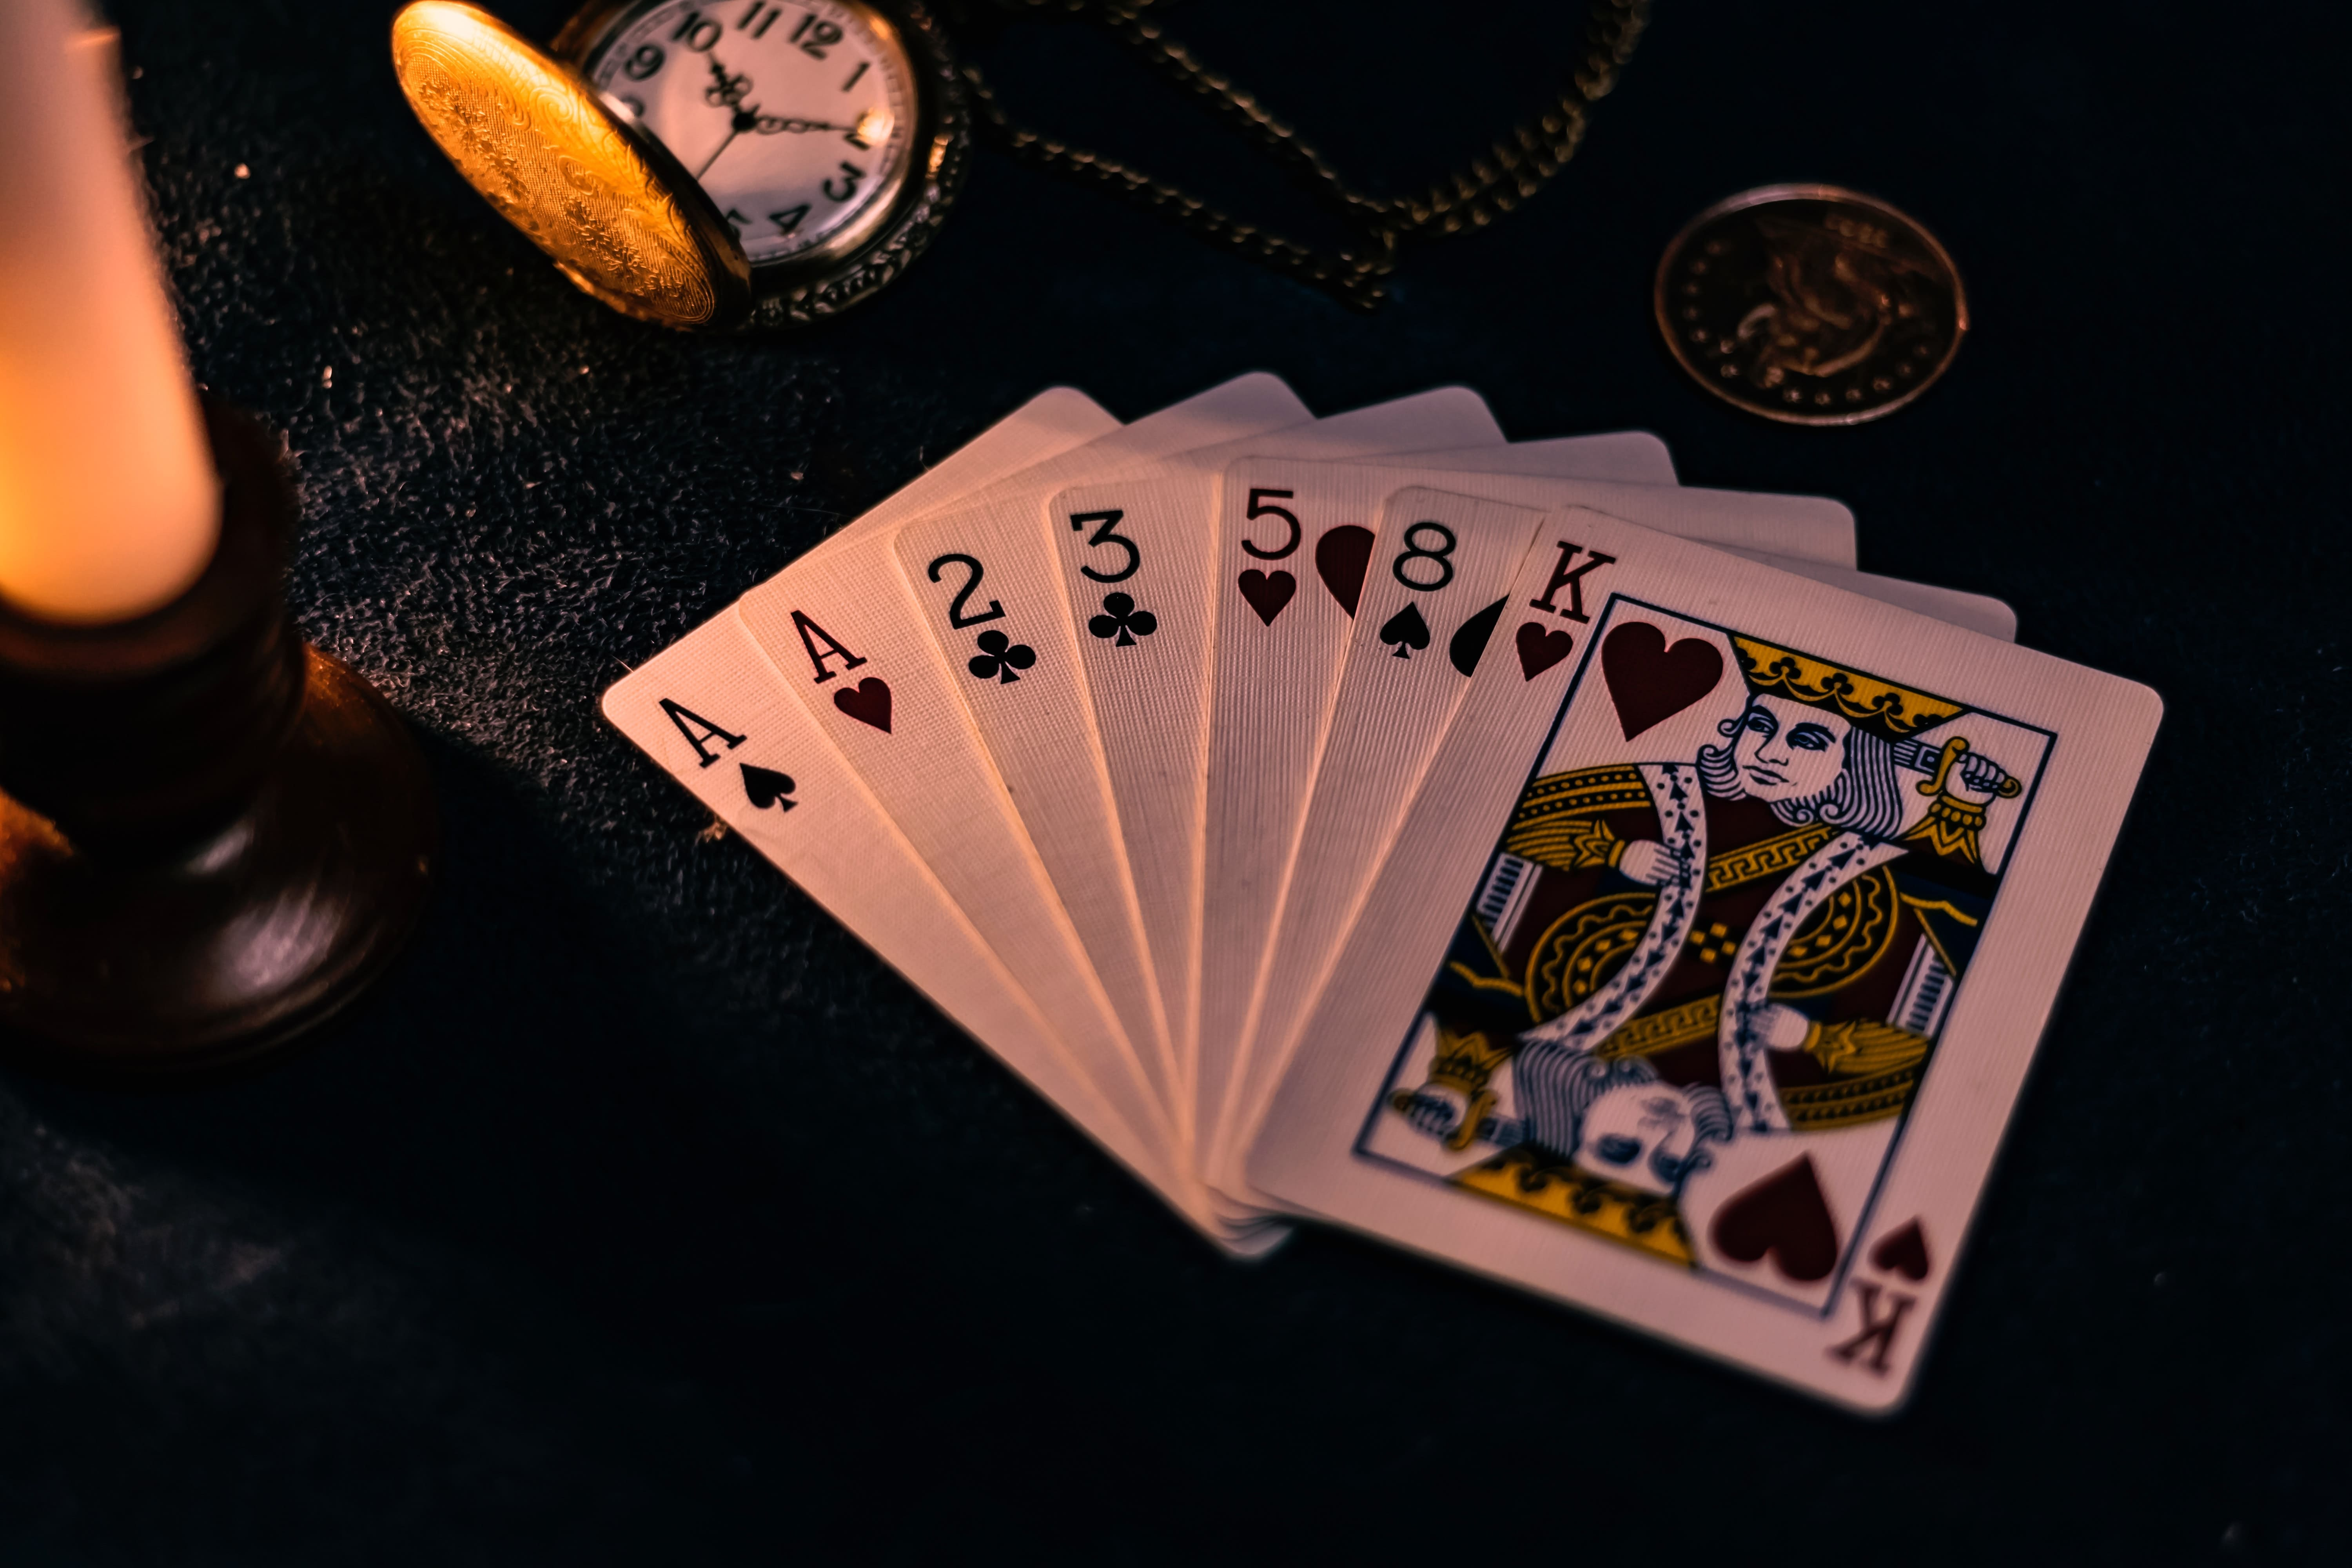 Spades And Clubs Playing Cards On Table With Pocketwatch